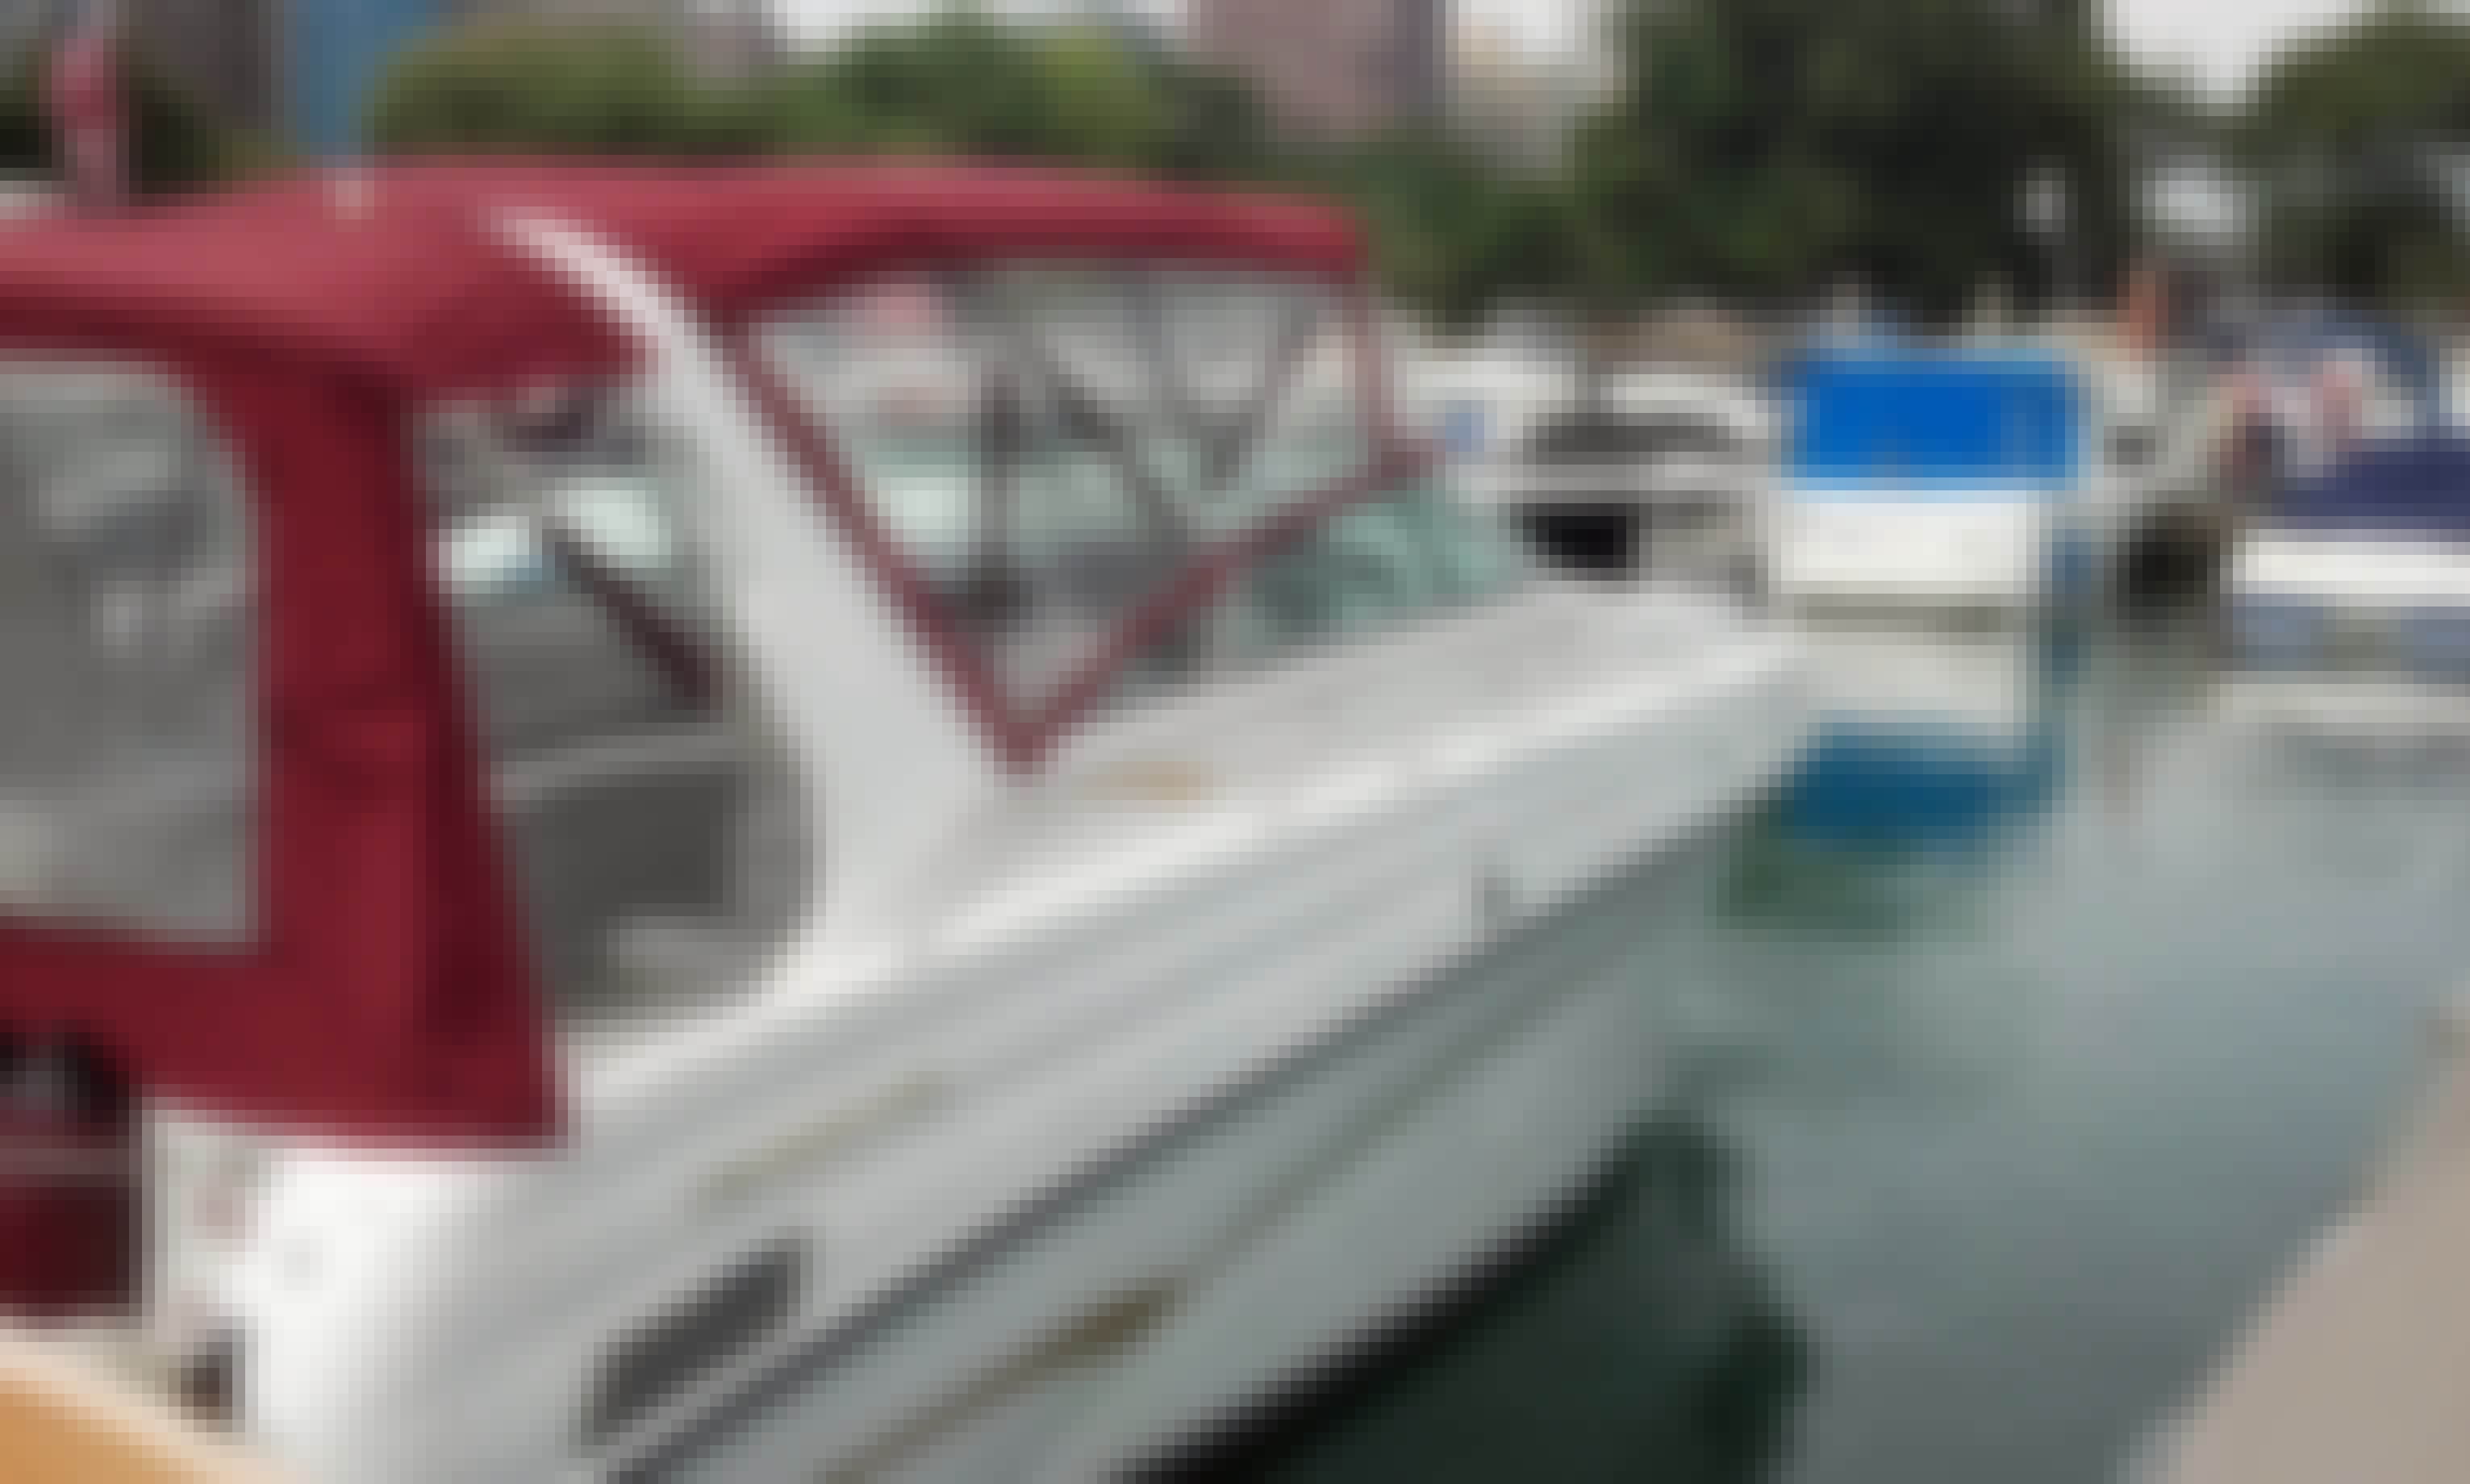 Perfect 30ft Cruiser for a great day on the lake *** Monday 9/30 80 degree weather****             lets go boating!!